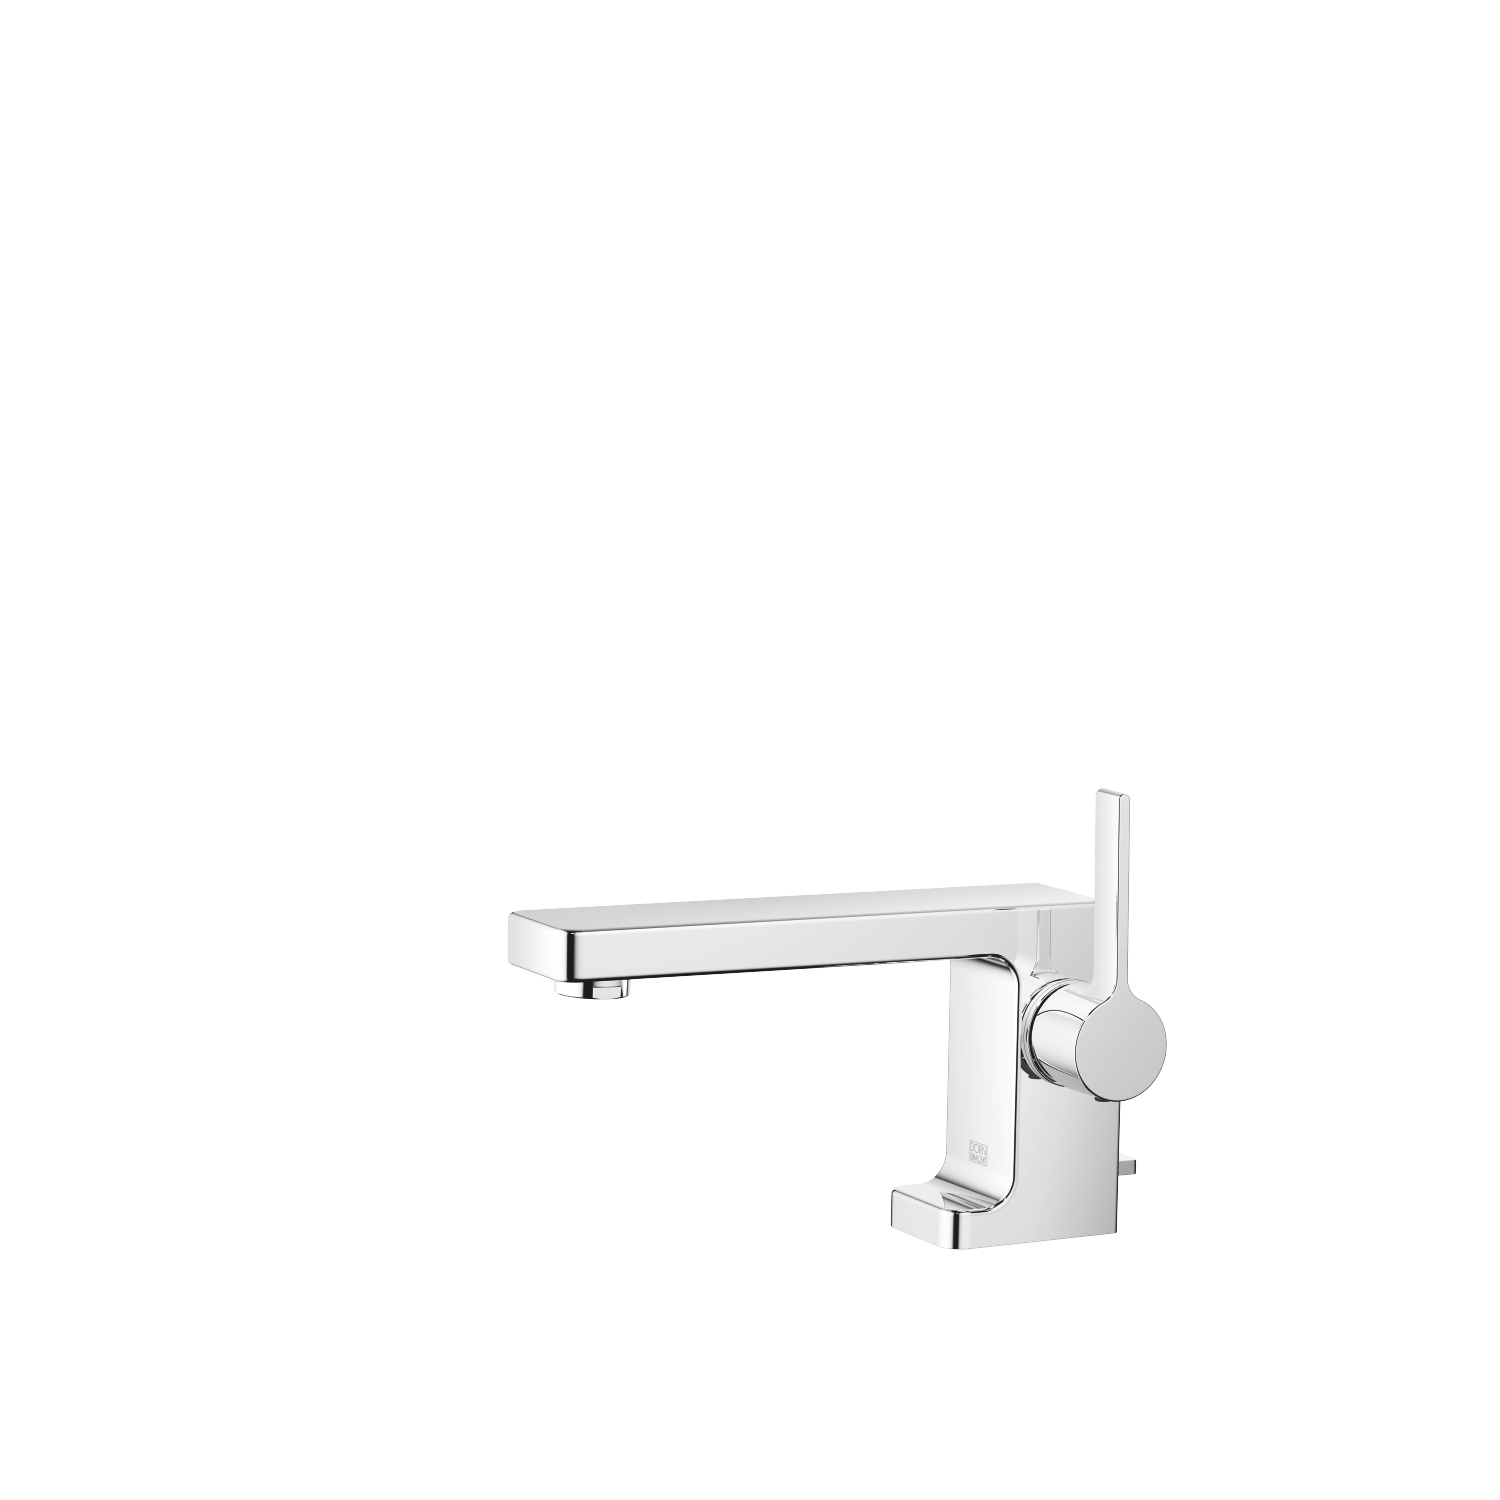 Single-lever basin mixer with pop-up waste - polished chrome - 33 500 710-00